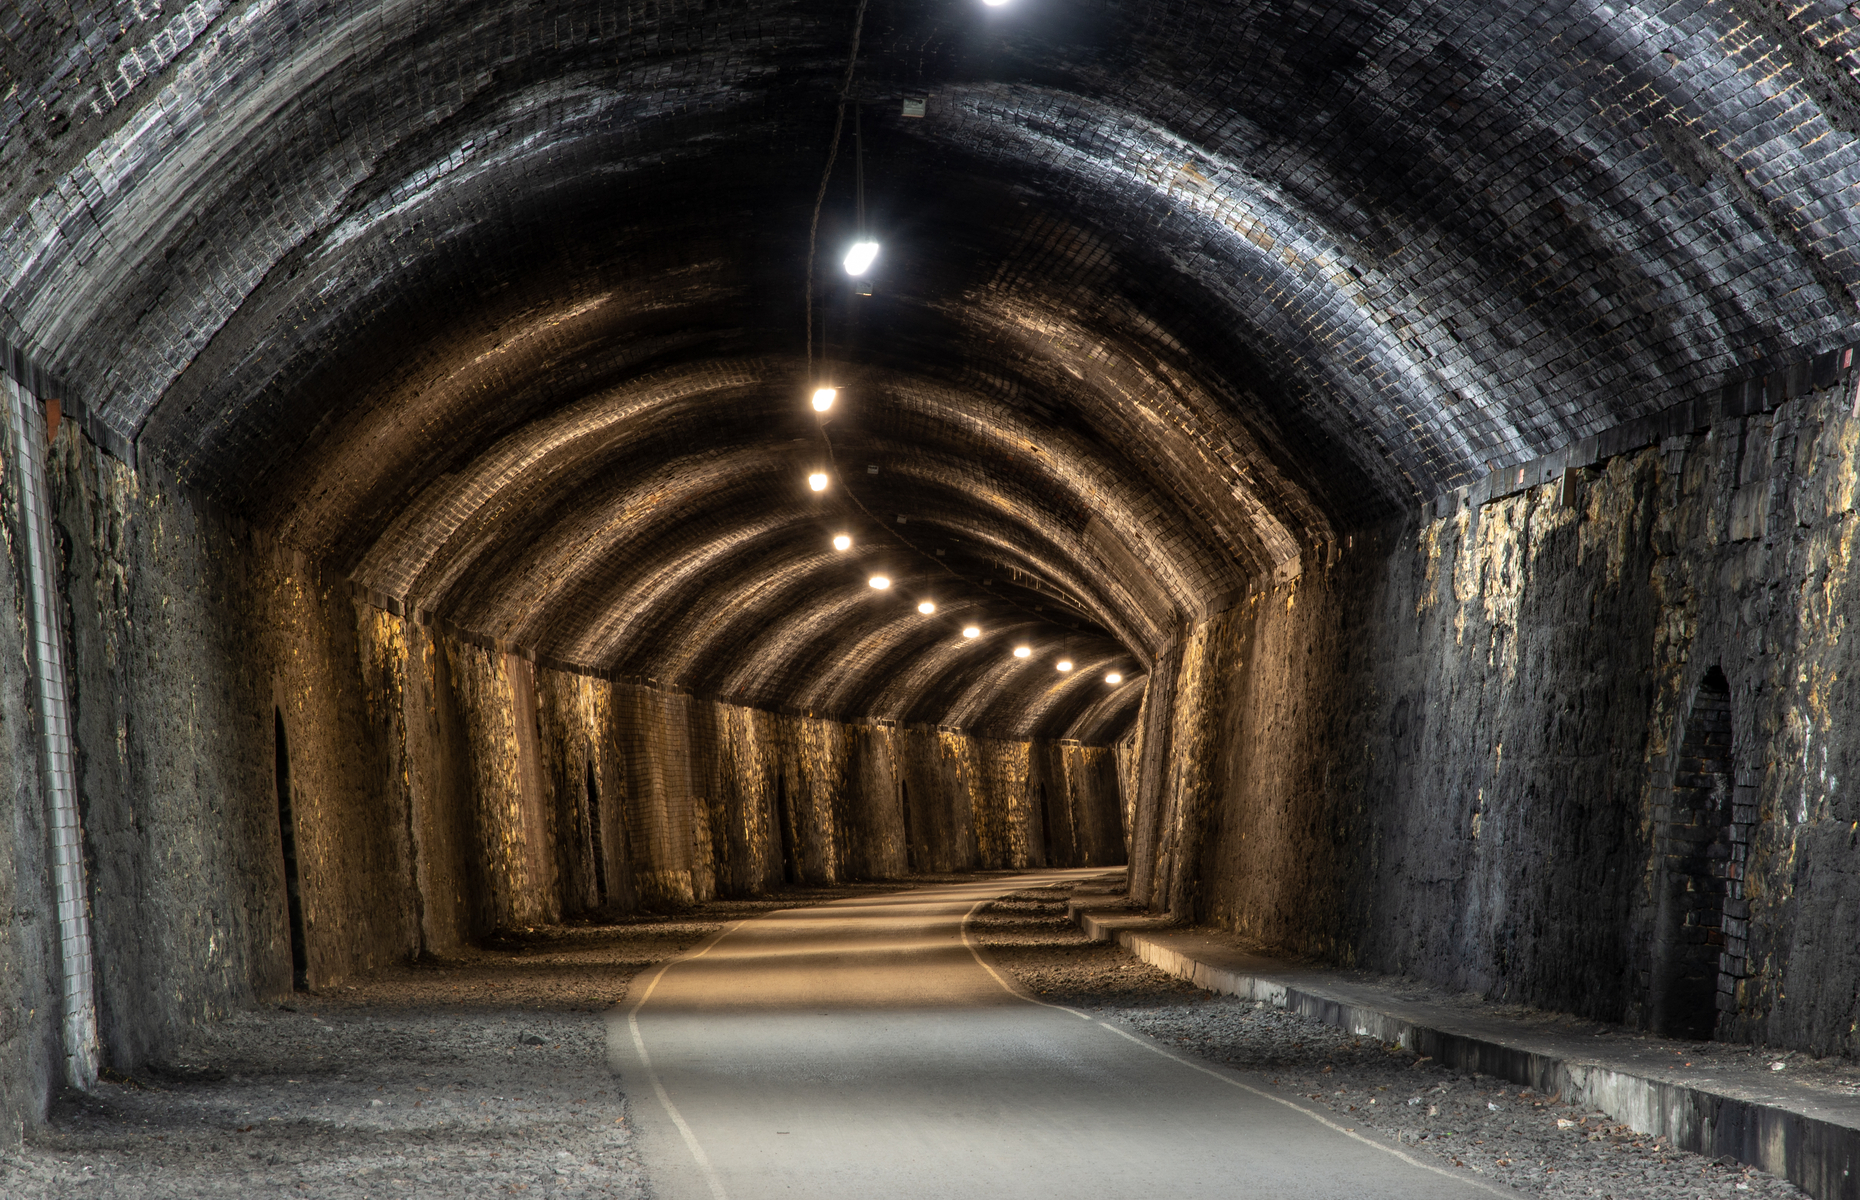 Tunnel along the Monsal Trail (Image: Joe Dunckley/Shutterstock)